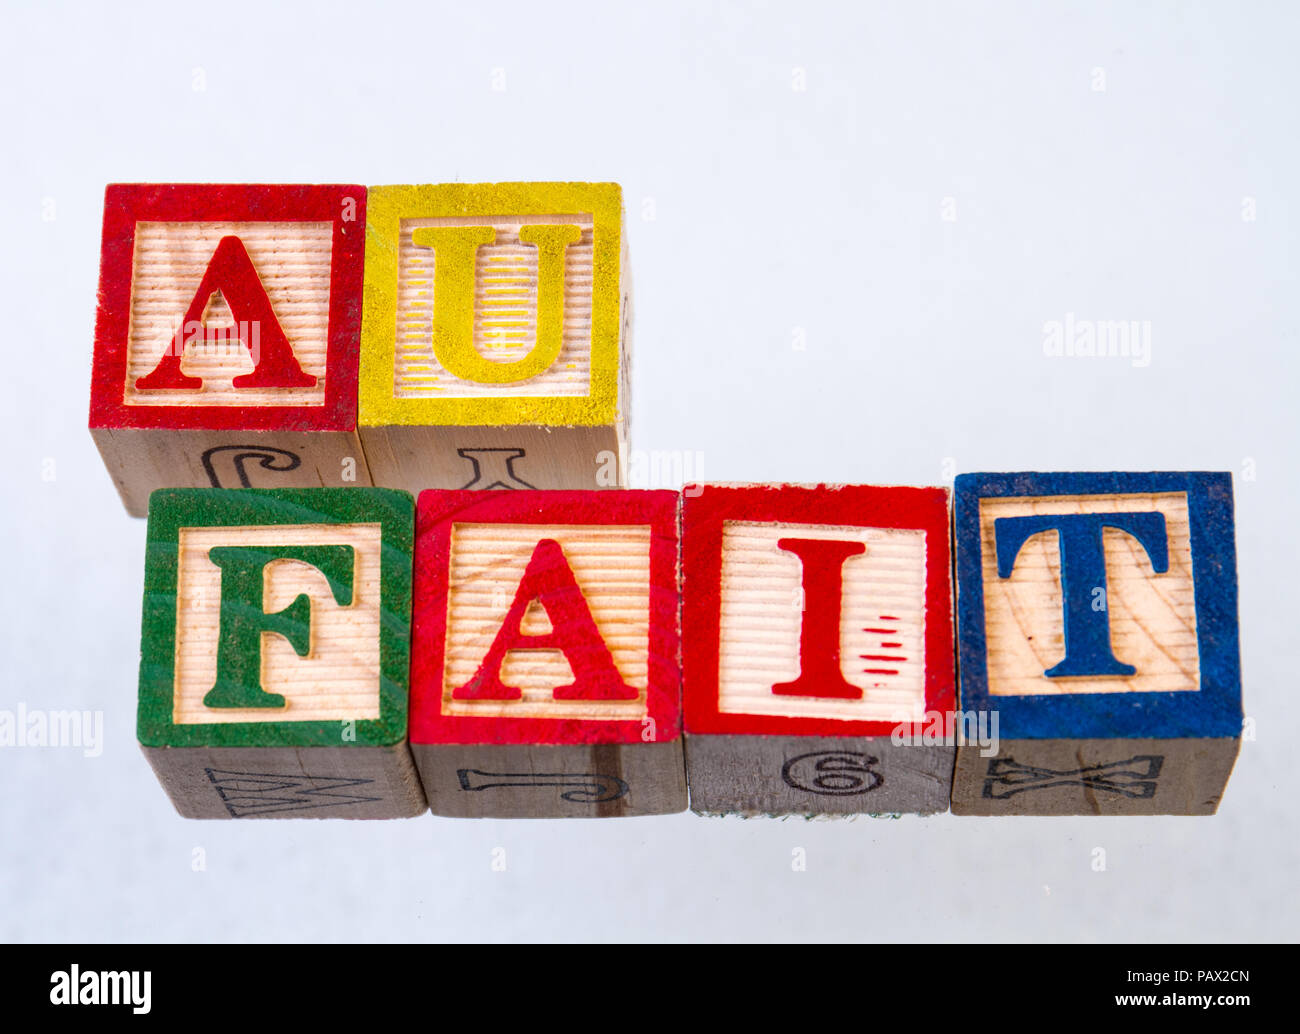 The term au fait displayed visually on a white background using colorful wooden toy blocks - Stock Image